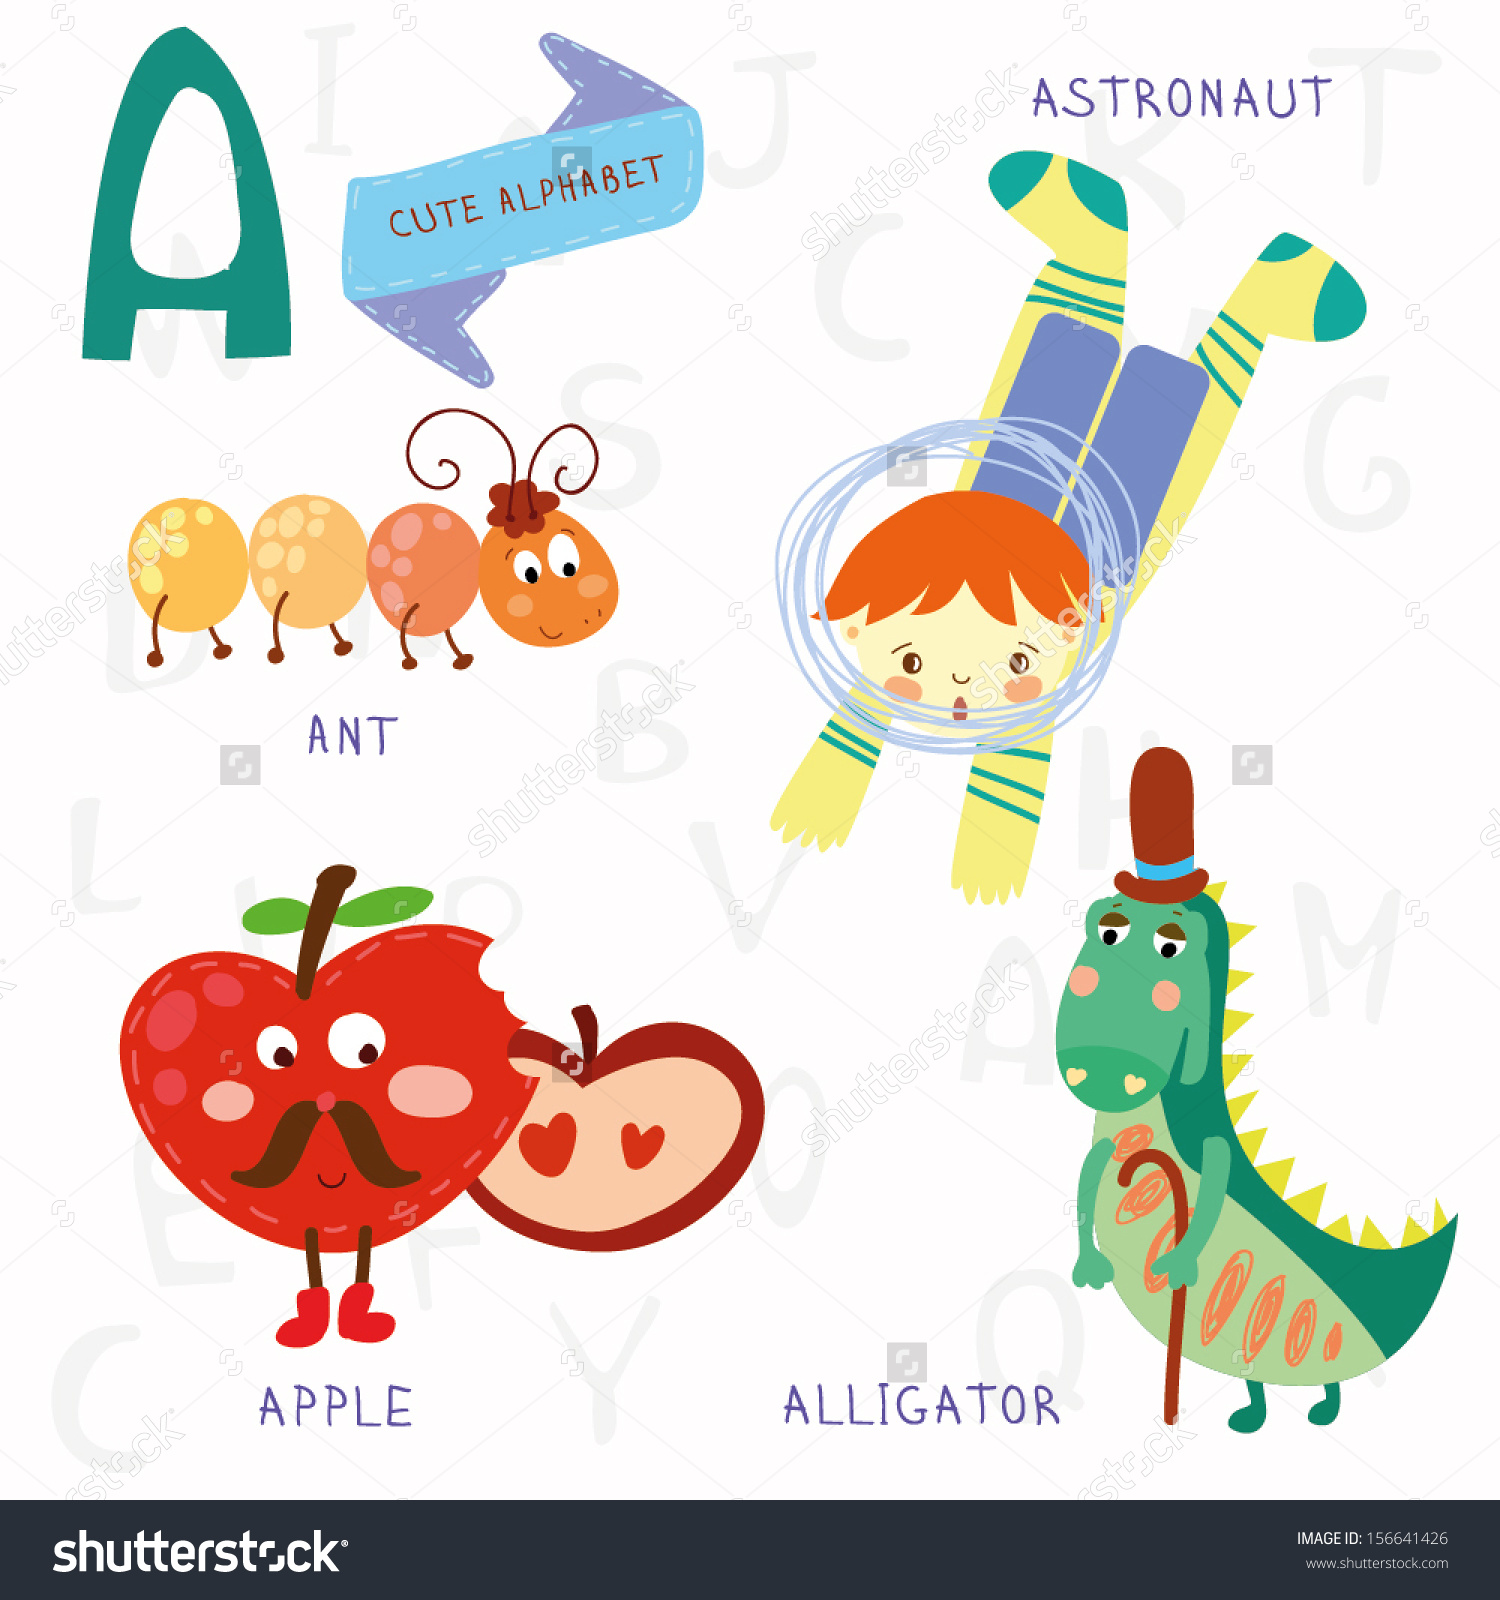 A alphabet letter apple clipart vector library library Very Cute Alphabet Letter Ant Astronaut Stock Vector 156641426 ... vector library library